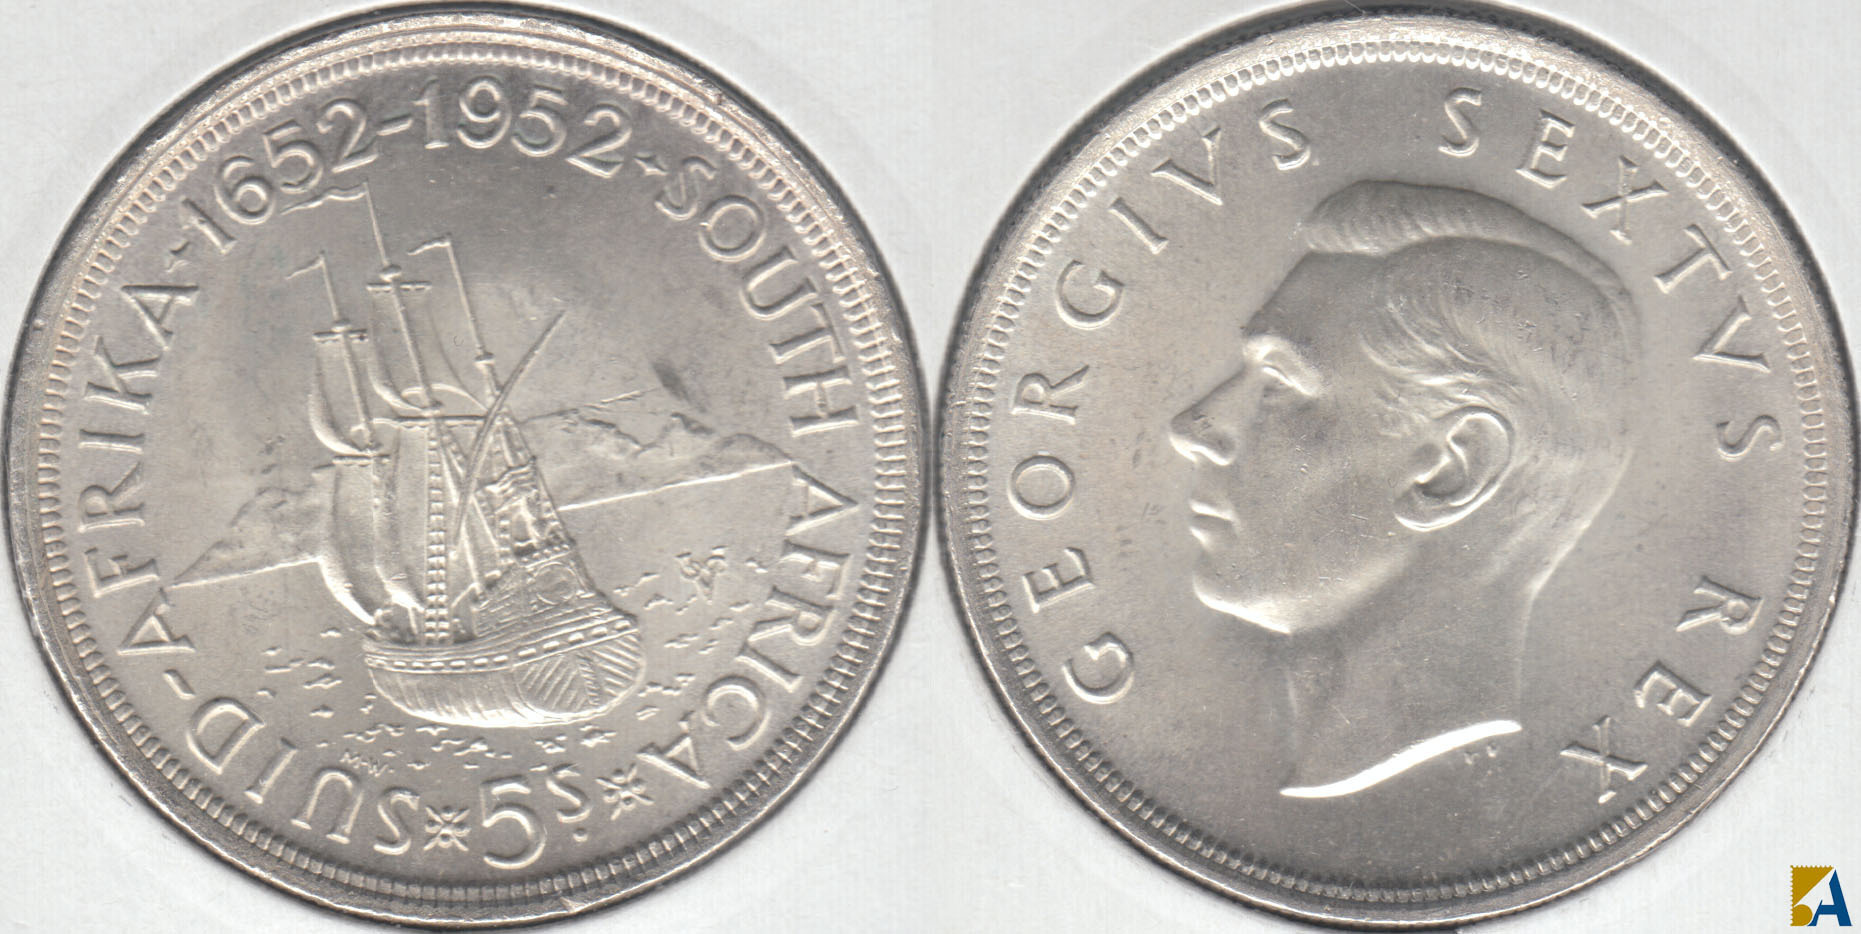 SUDAFRICA - SOUTH AFRICA. 5 SHILLINGS DE 1952. PLATA 0.500.